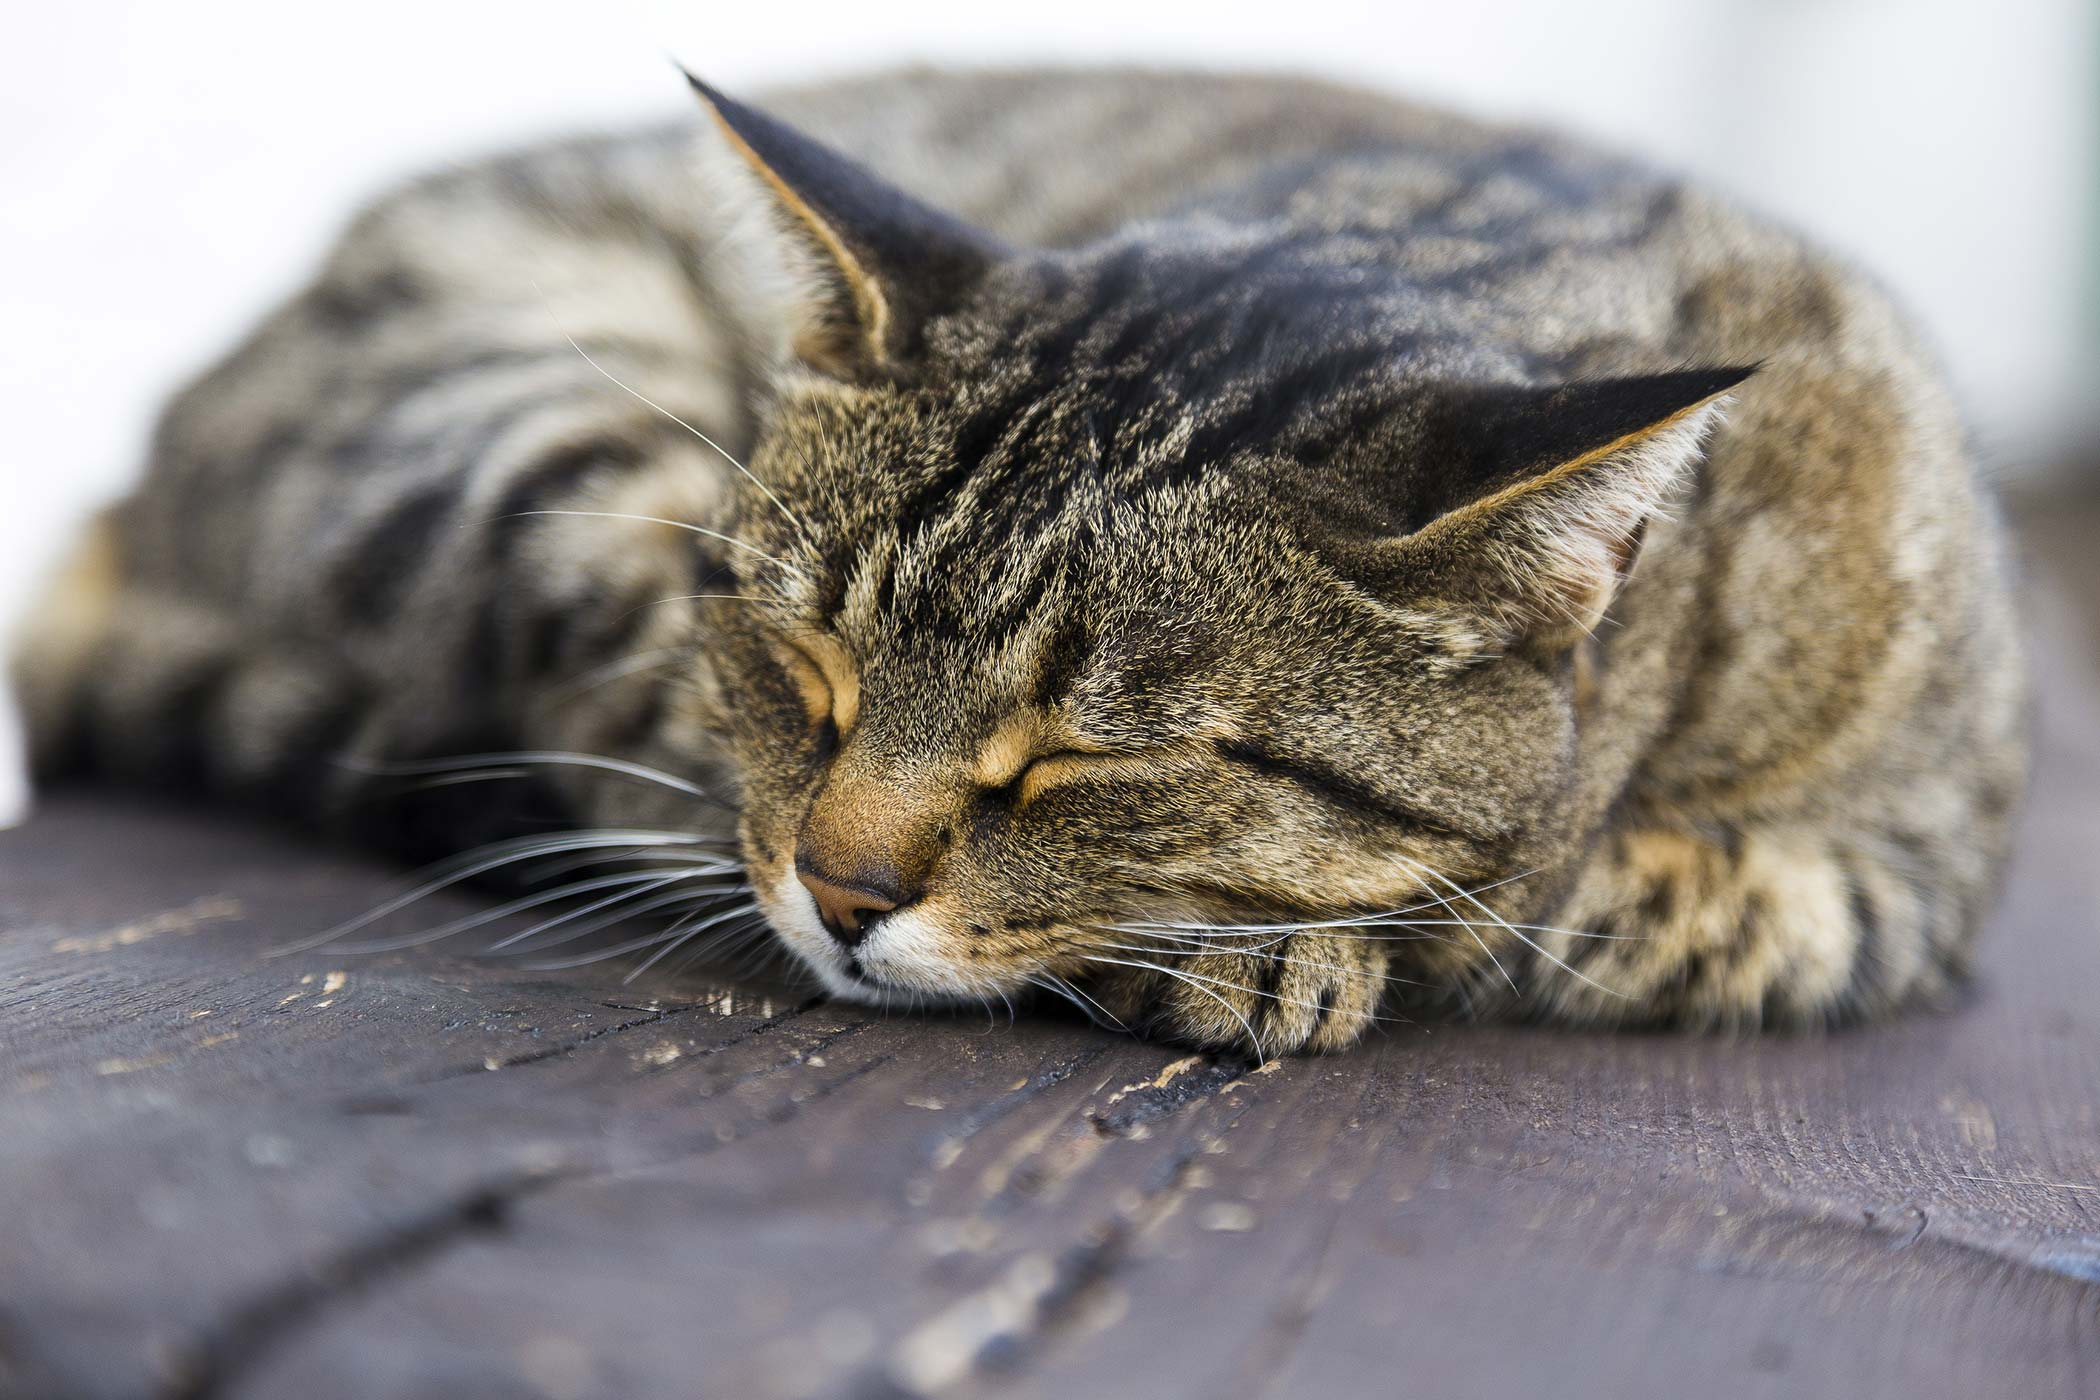 Calcium Deposits in the Urinary Tract in Cats